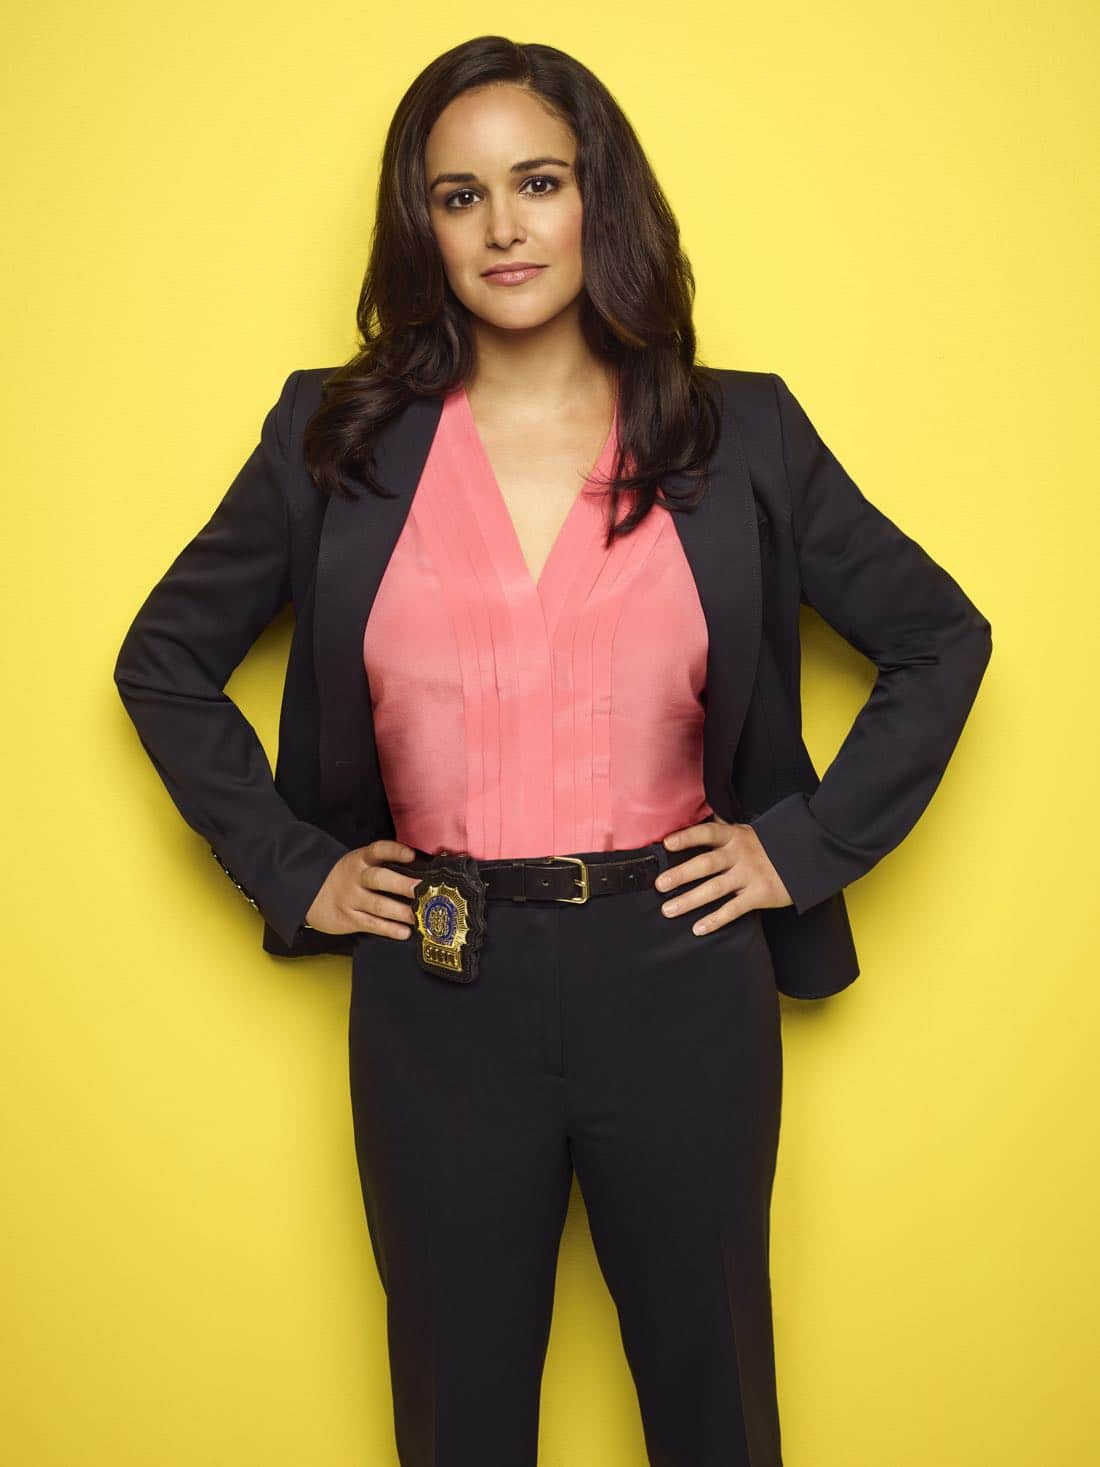 BROOKLYN NINE-NINE: Melissa Fumero as Detective Amy Santiago. BROOKLYN NINE-NINE Season Five premieres Tuesday, Sept. 26 (9:30-10:00 PM ET/PT) on FOX. ©2017 Fox Broadcasting Co. CR: Robert Trachtenberg/FOX